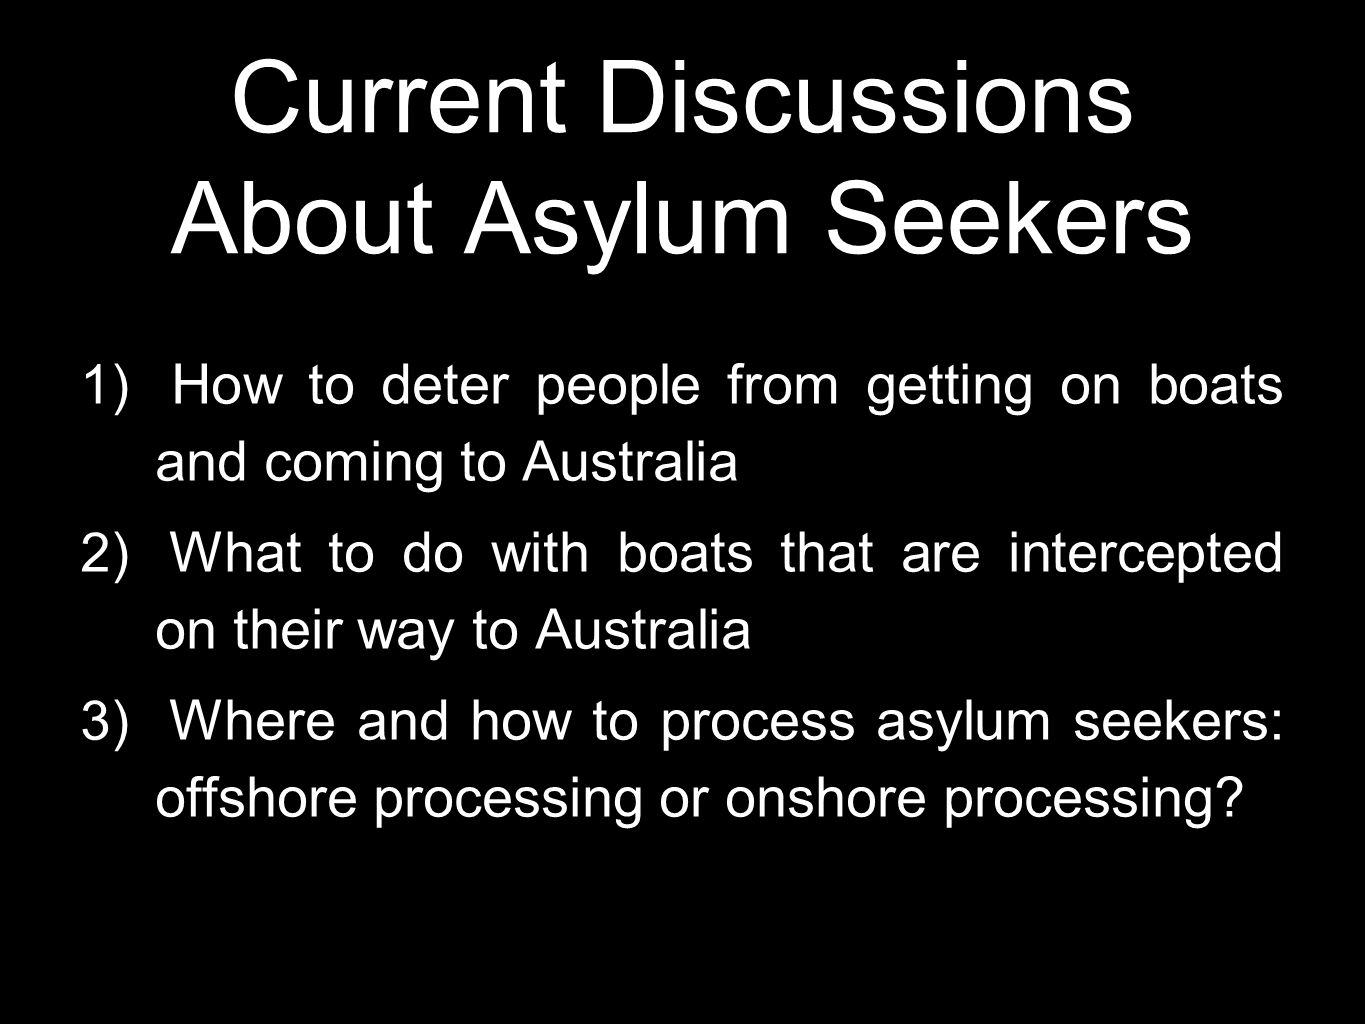 Current Discussions About Asylum Seekers